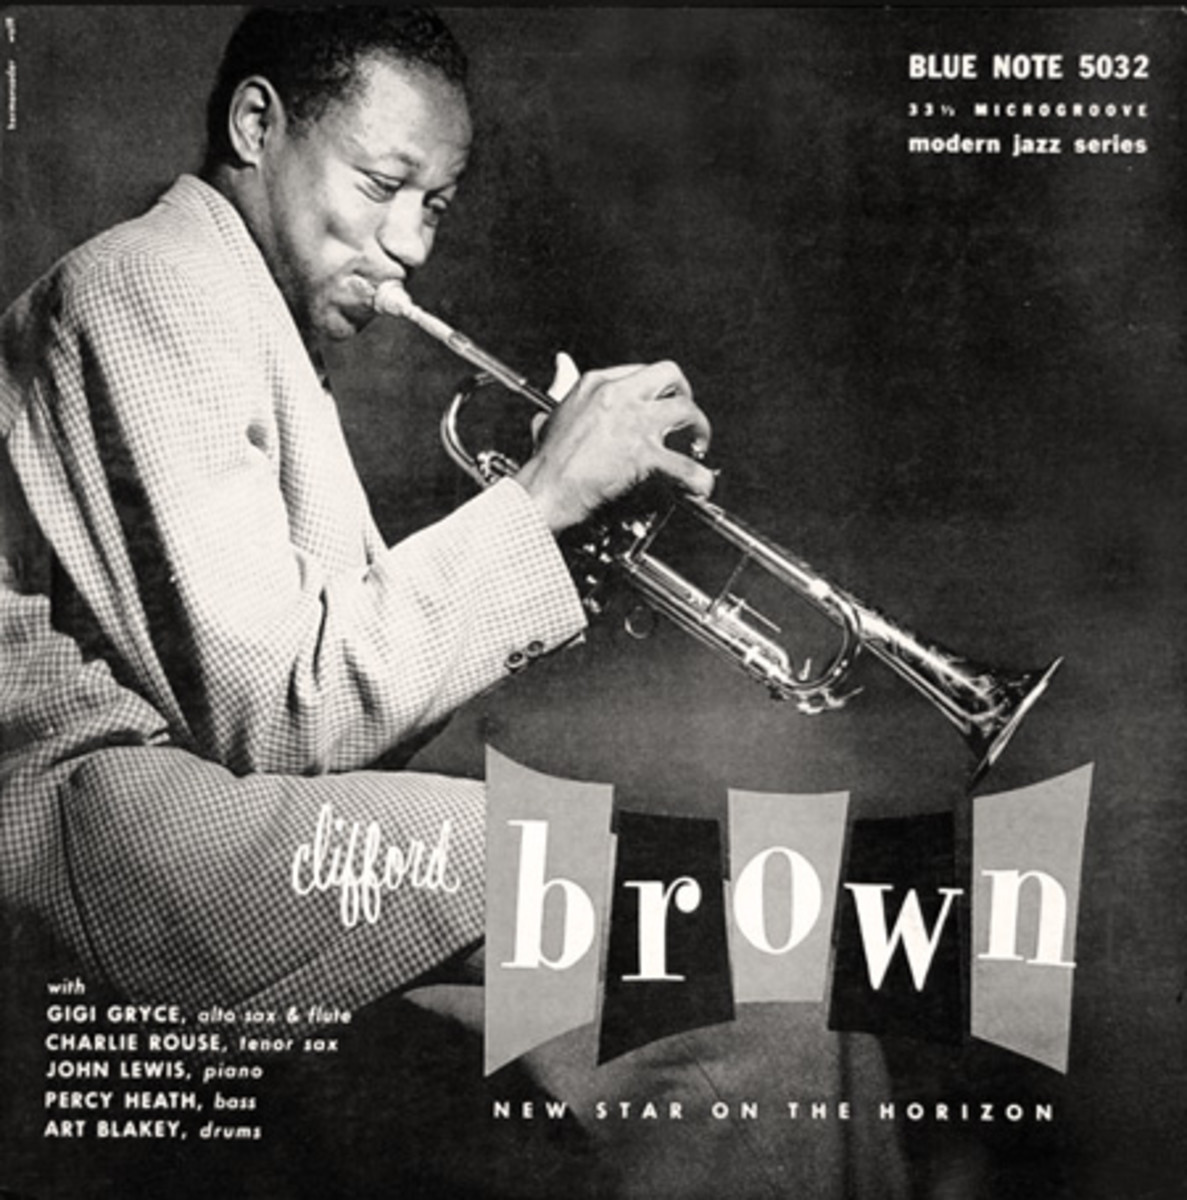 "Clifford Brown ""New Star on the Horizon"" Blue Note Records BLP 5032 10"" LP Vinyl Microgroove Record (1953) Album Cover Design by John Hermansader, Photo by Francis Wolff"